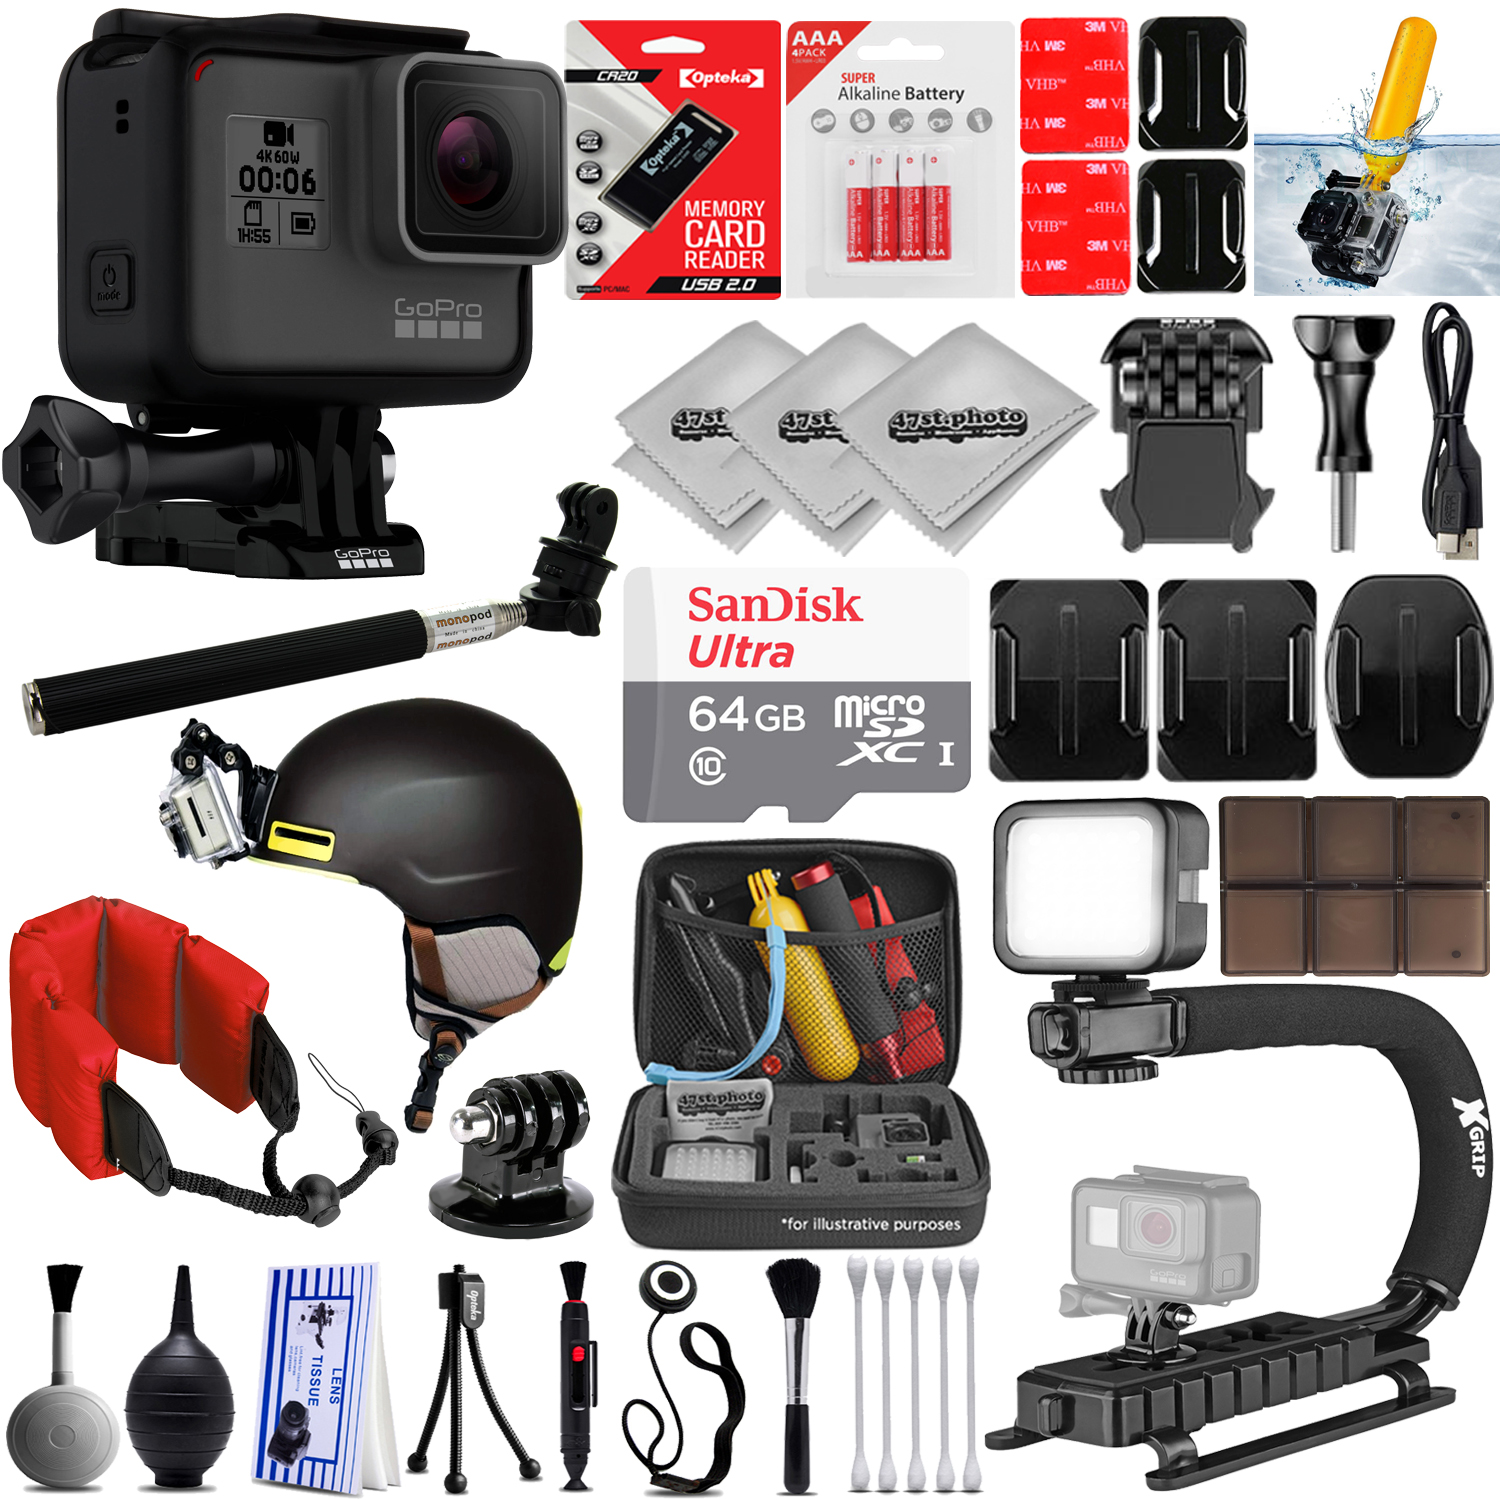 GoPro HERO5 Black 4K 12MP Digital Camcorder w/ 64GB - 30PC Sports Action Bundle (64GB Micro SD, Card Reader, 4PC Curved Adhesive Mount, High Power LED Light, X-GRIP Stabilizing Handle & More)